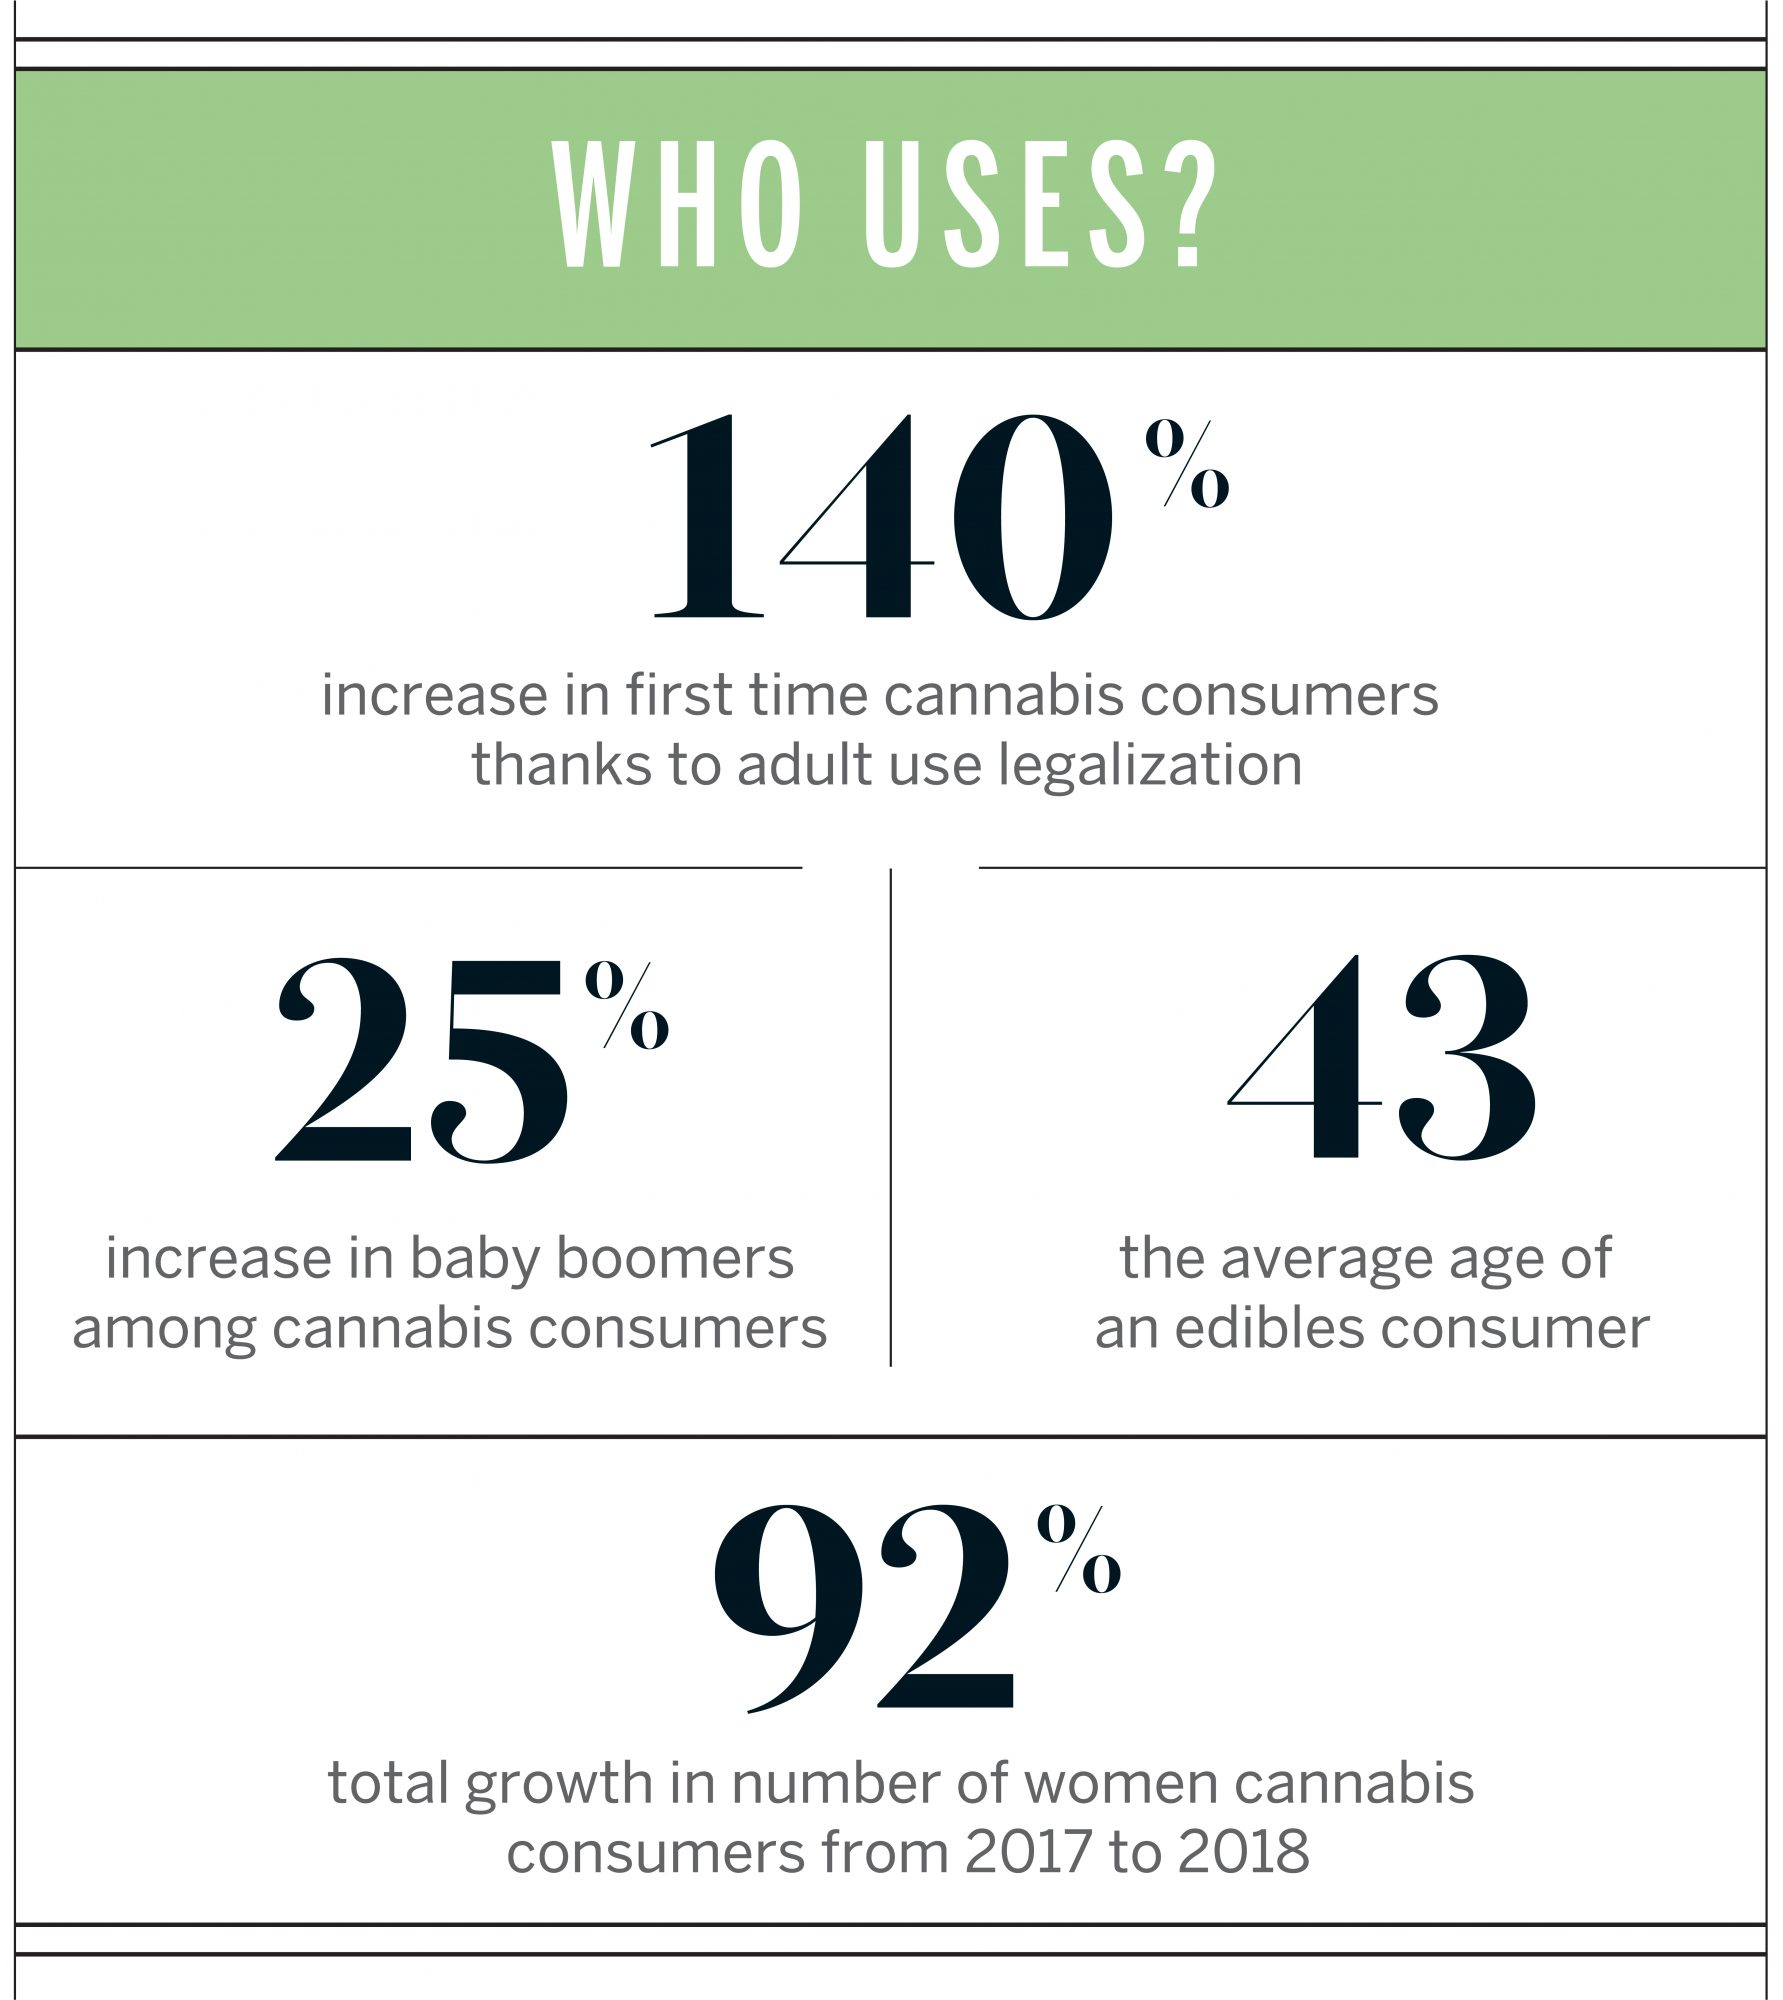 Who Uses Cannabis?